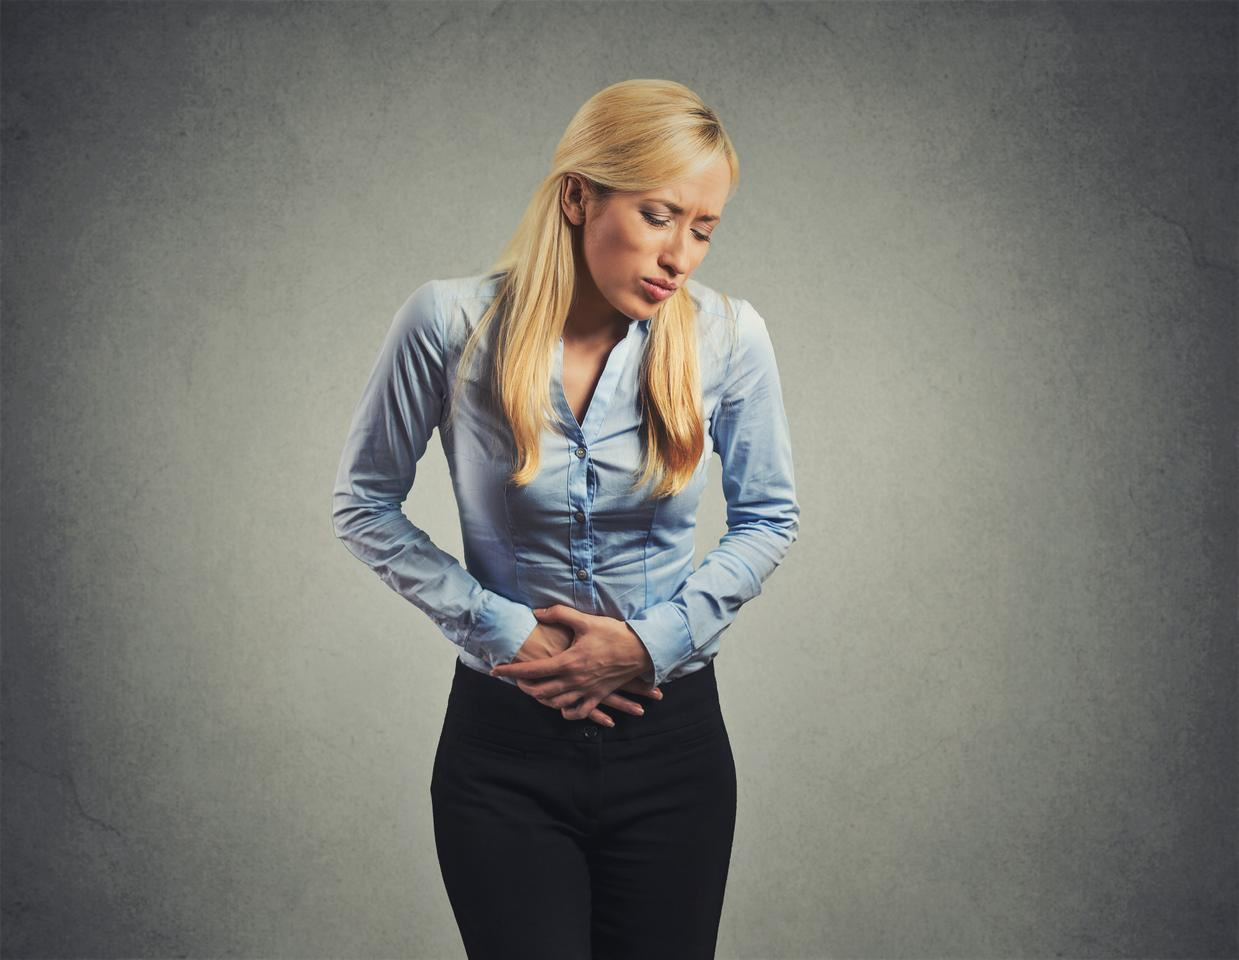 Irritable bowel syndrome is the most common functional gastrointestinal disorder